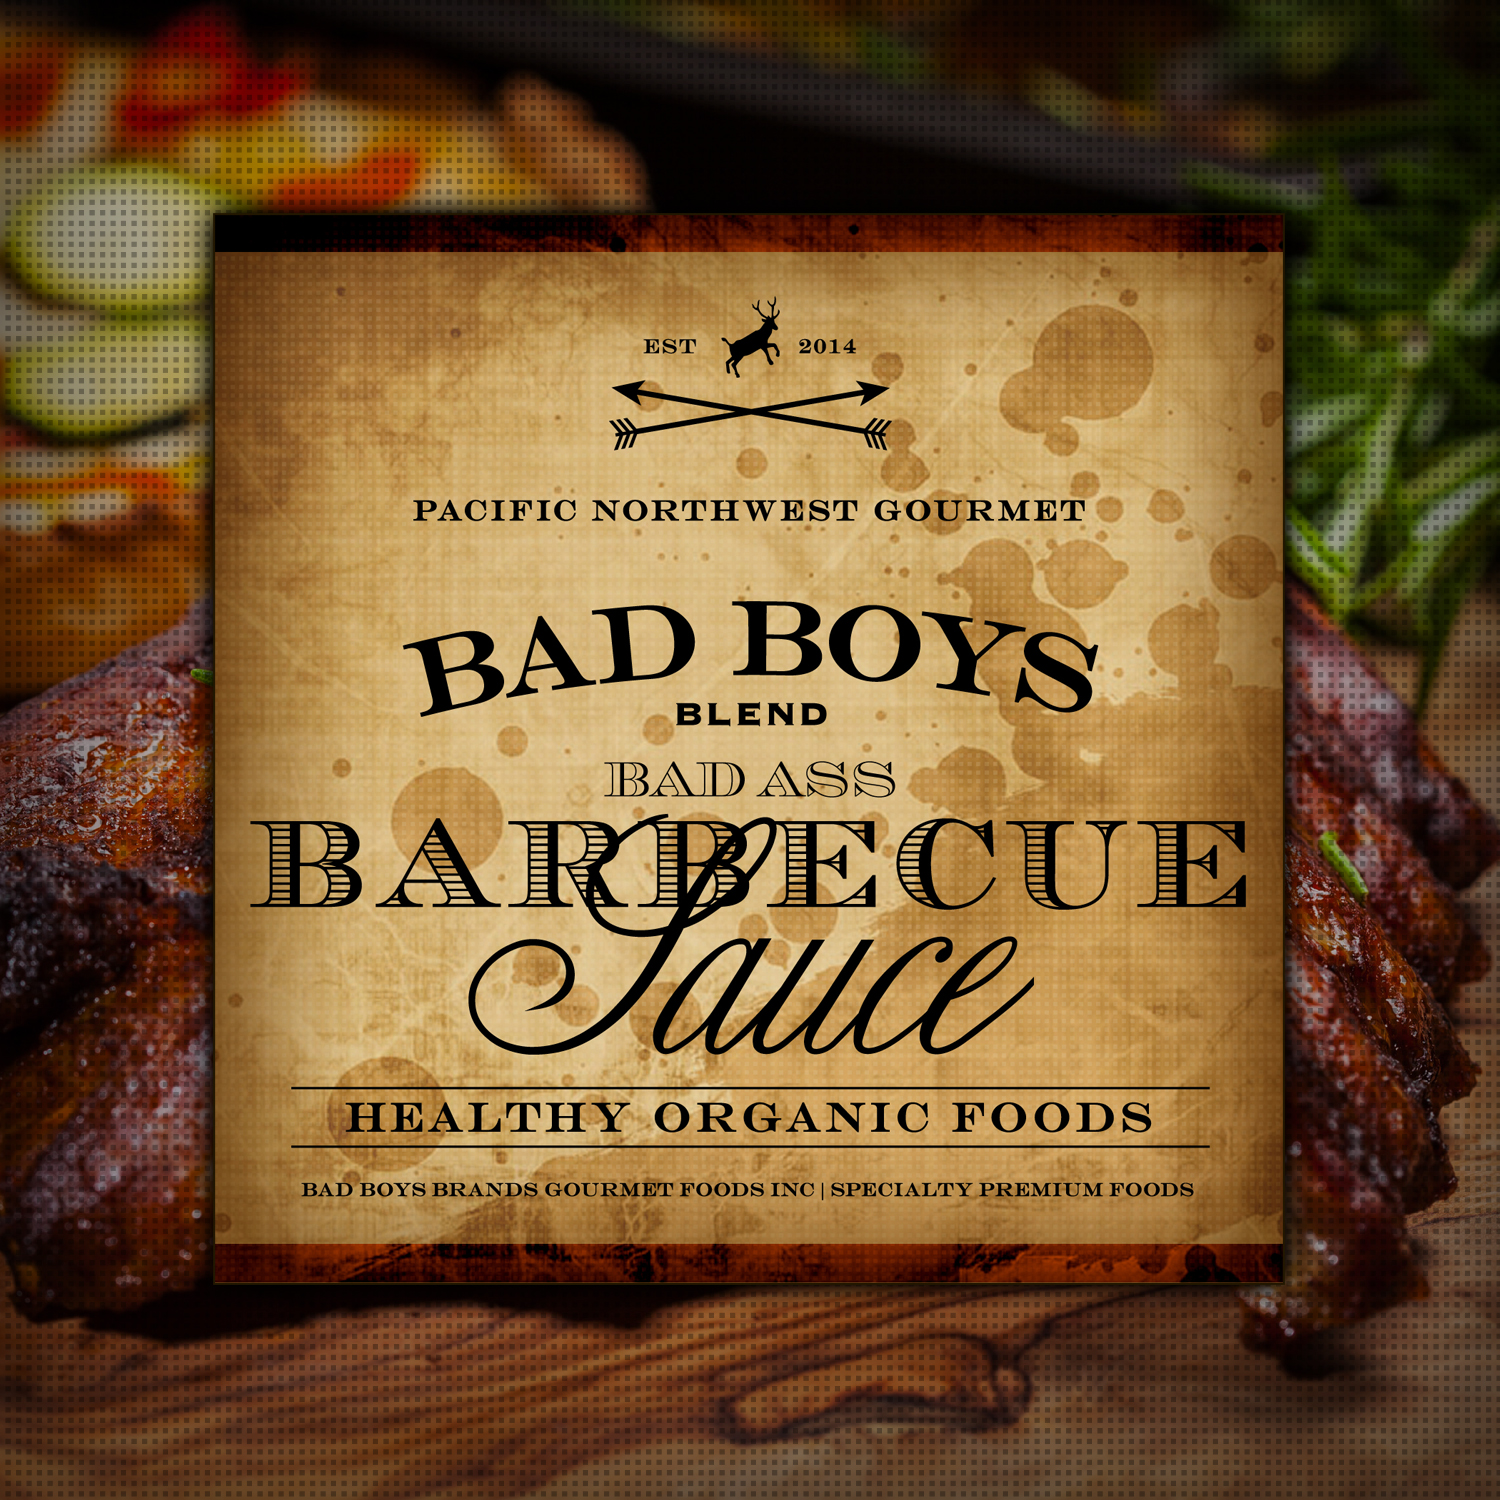 Bad Boys Blend Barbecue [v2] Sauce [tm] by Graham Hnedak 24 SEPT 2014.jpg